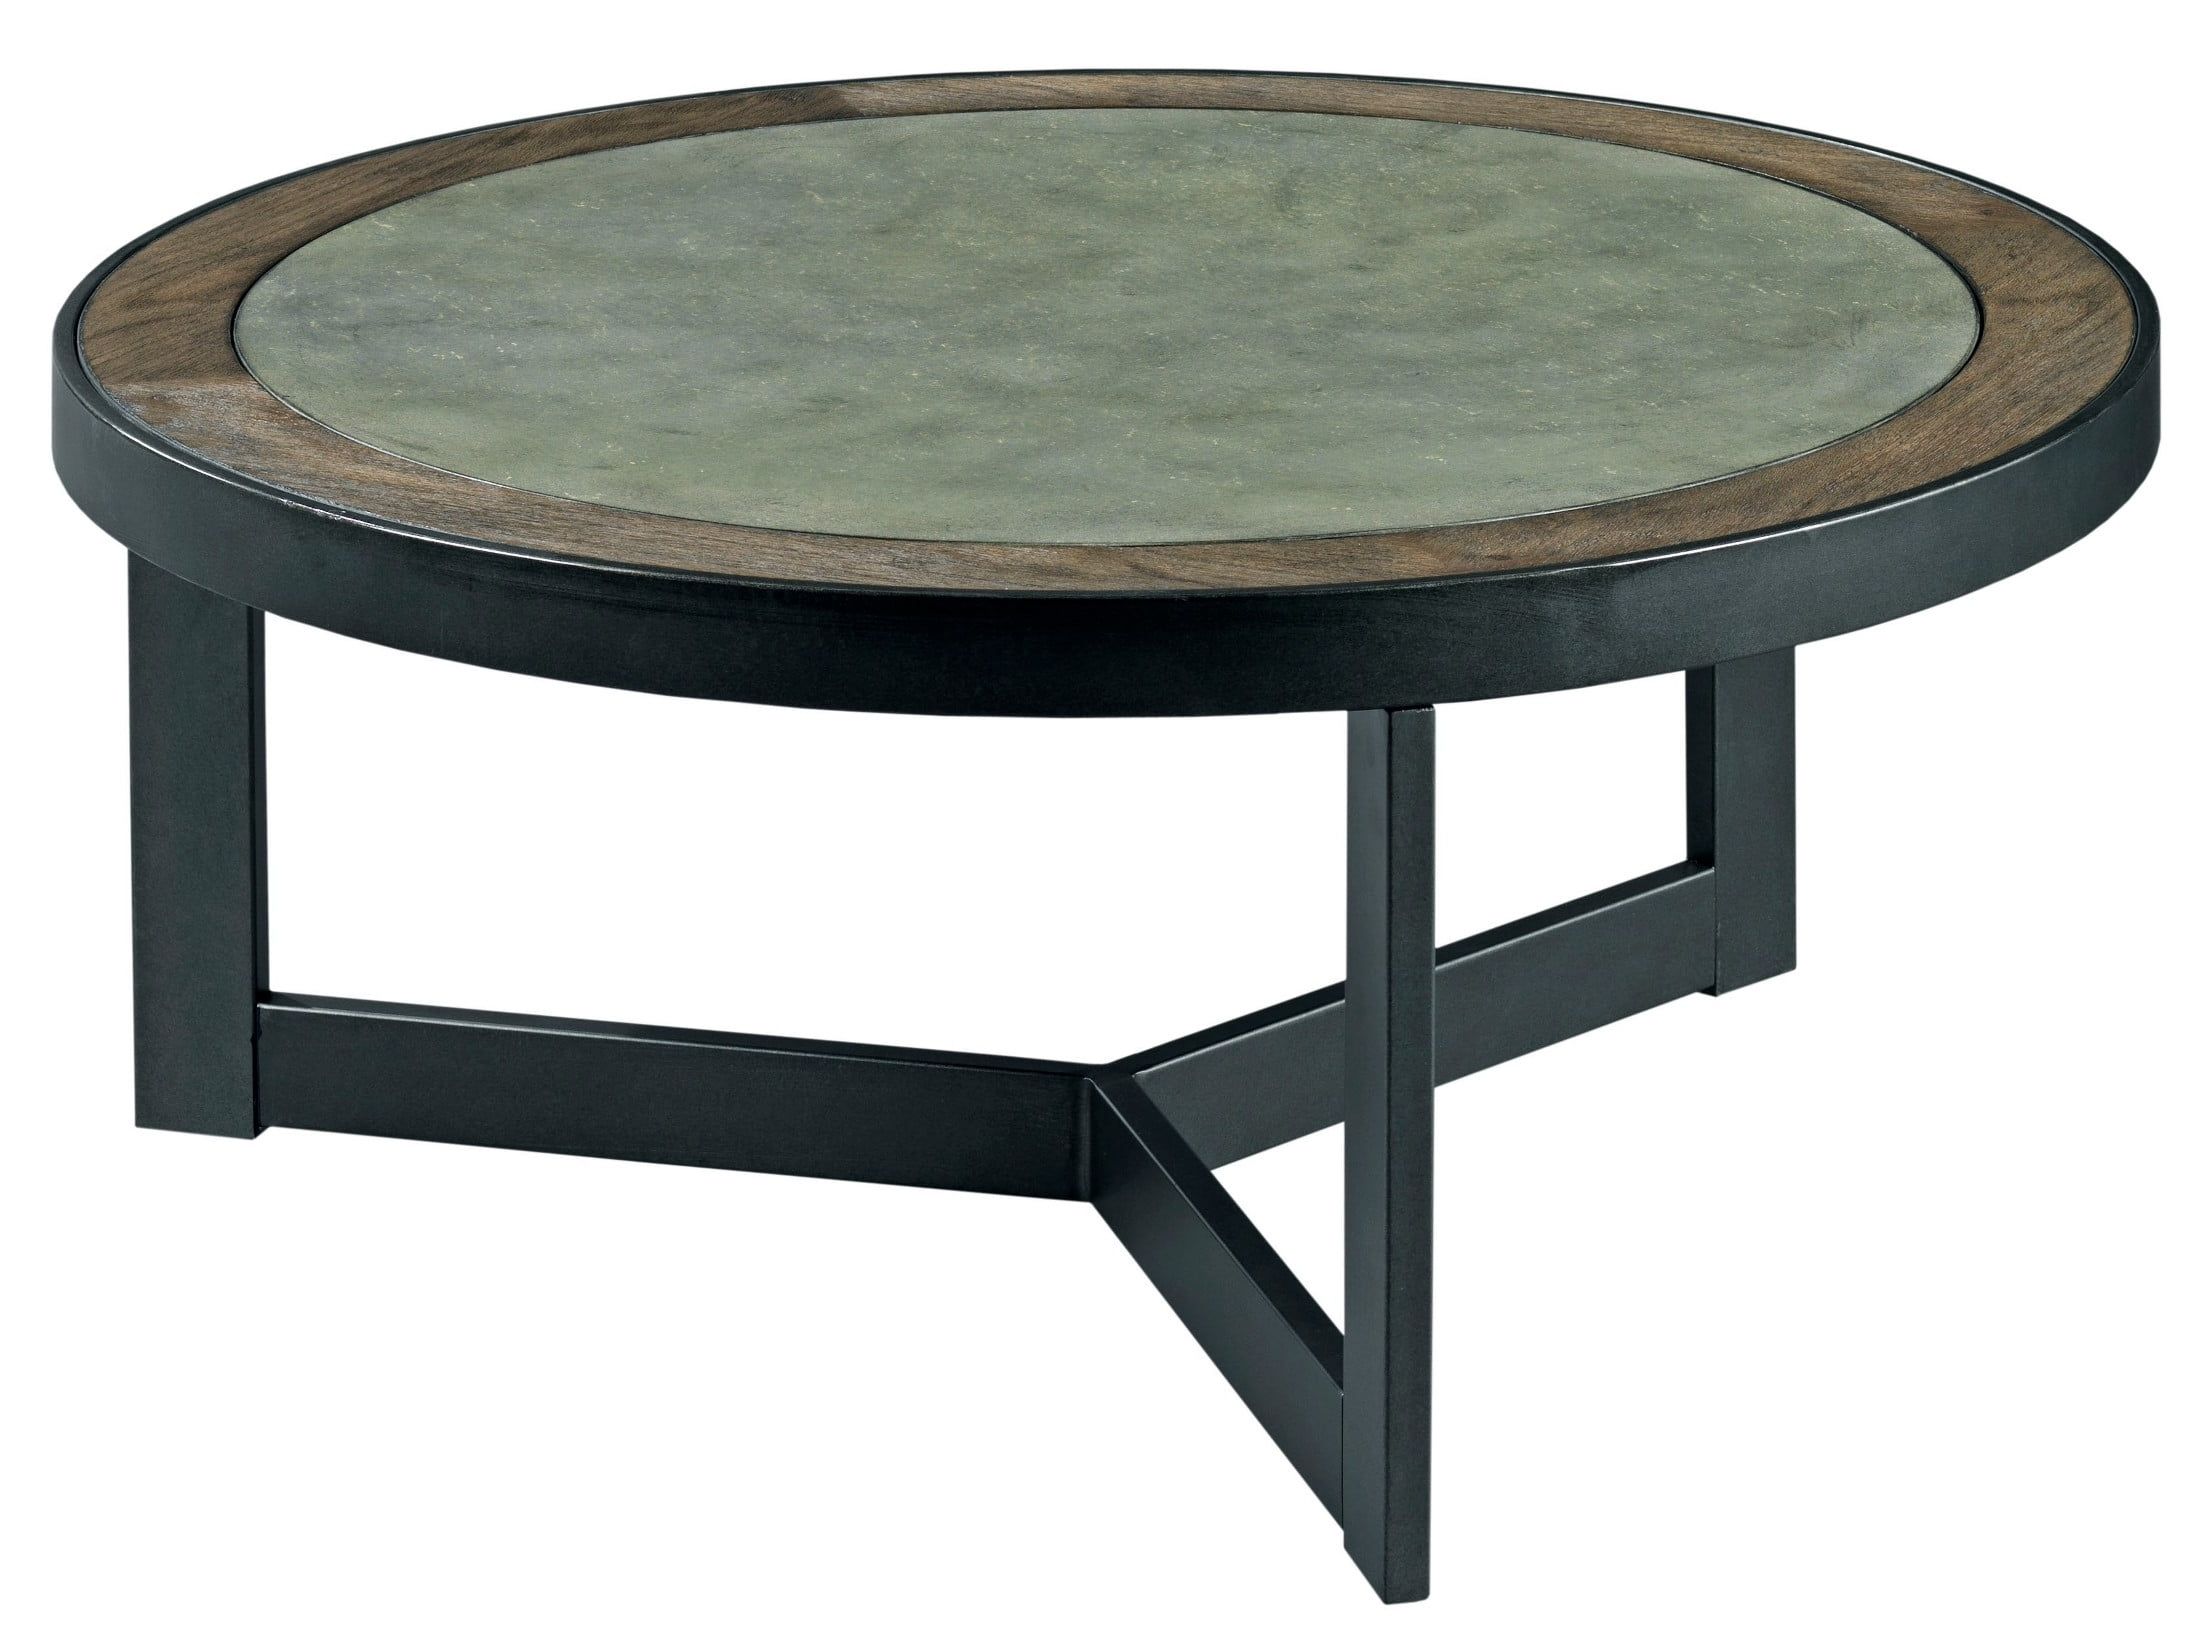 Graystone Dark Oak Round Cocktail Table From Hammary (View 7 of 20)